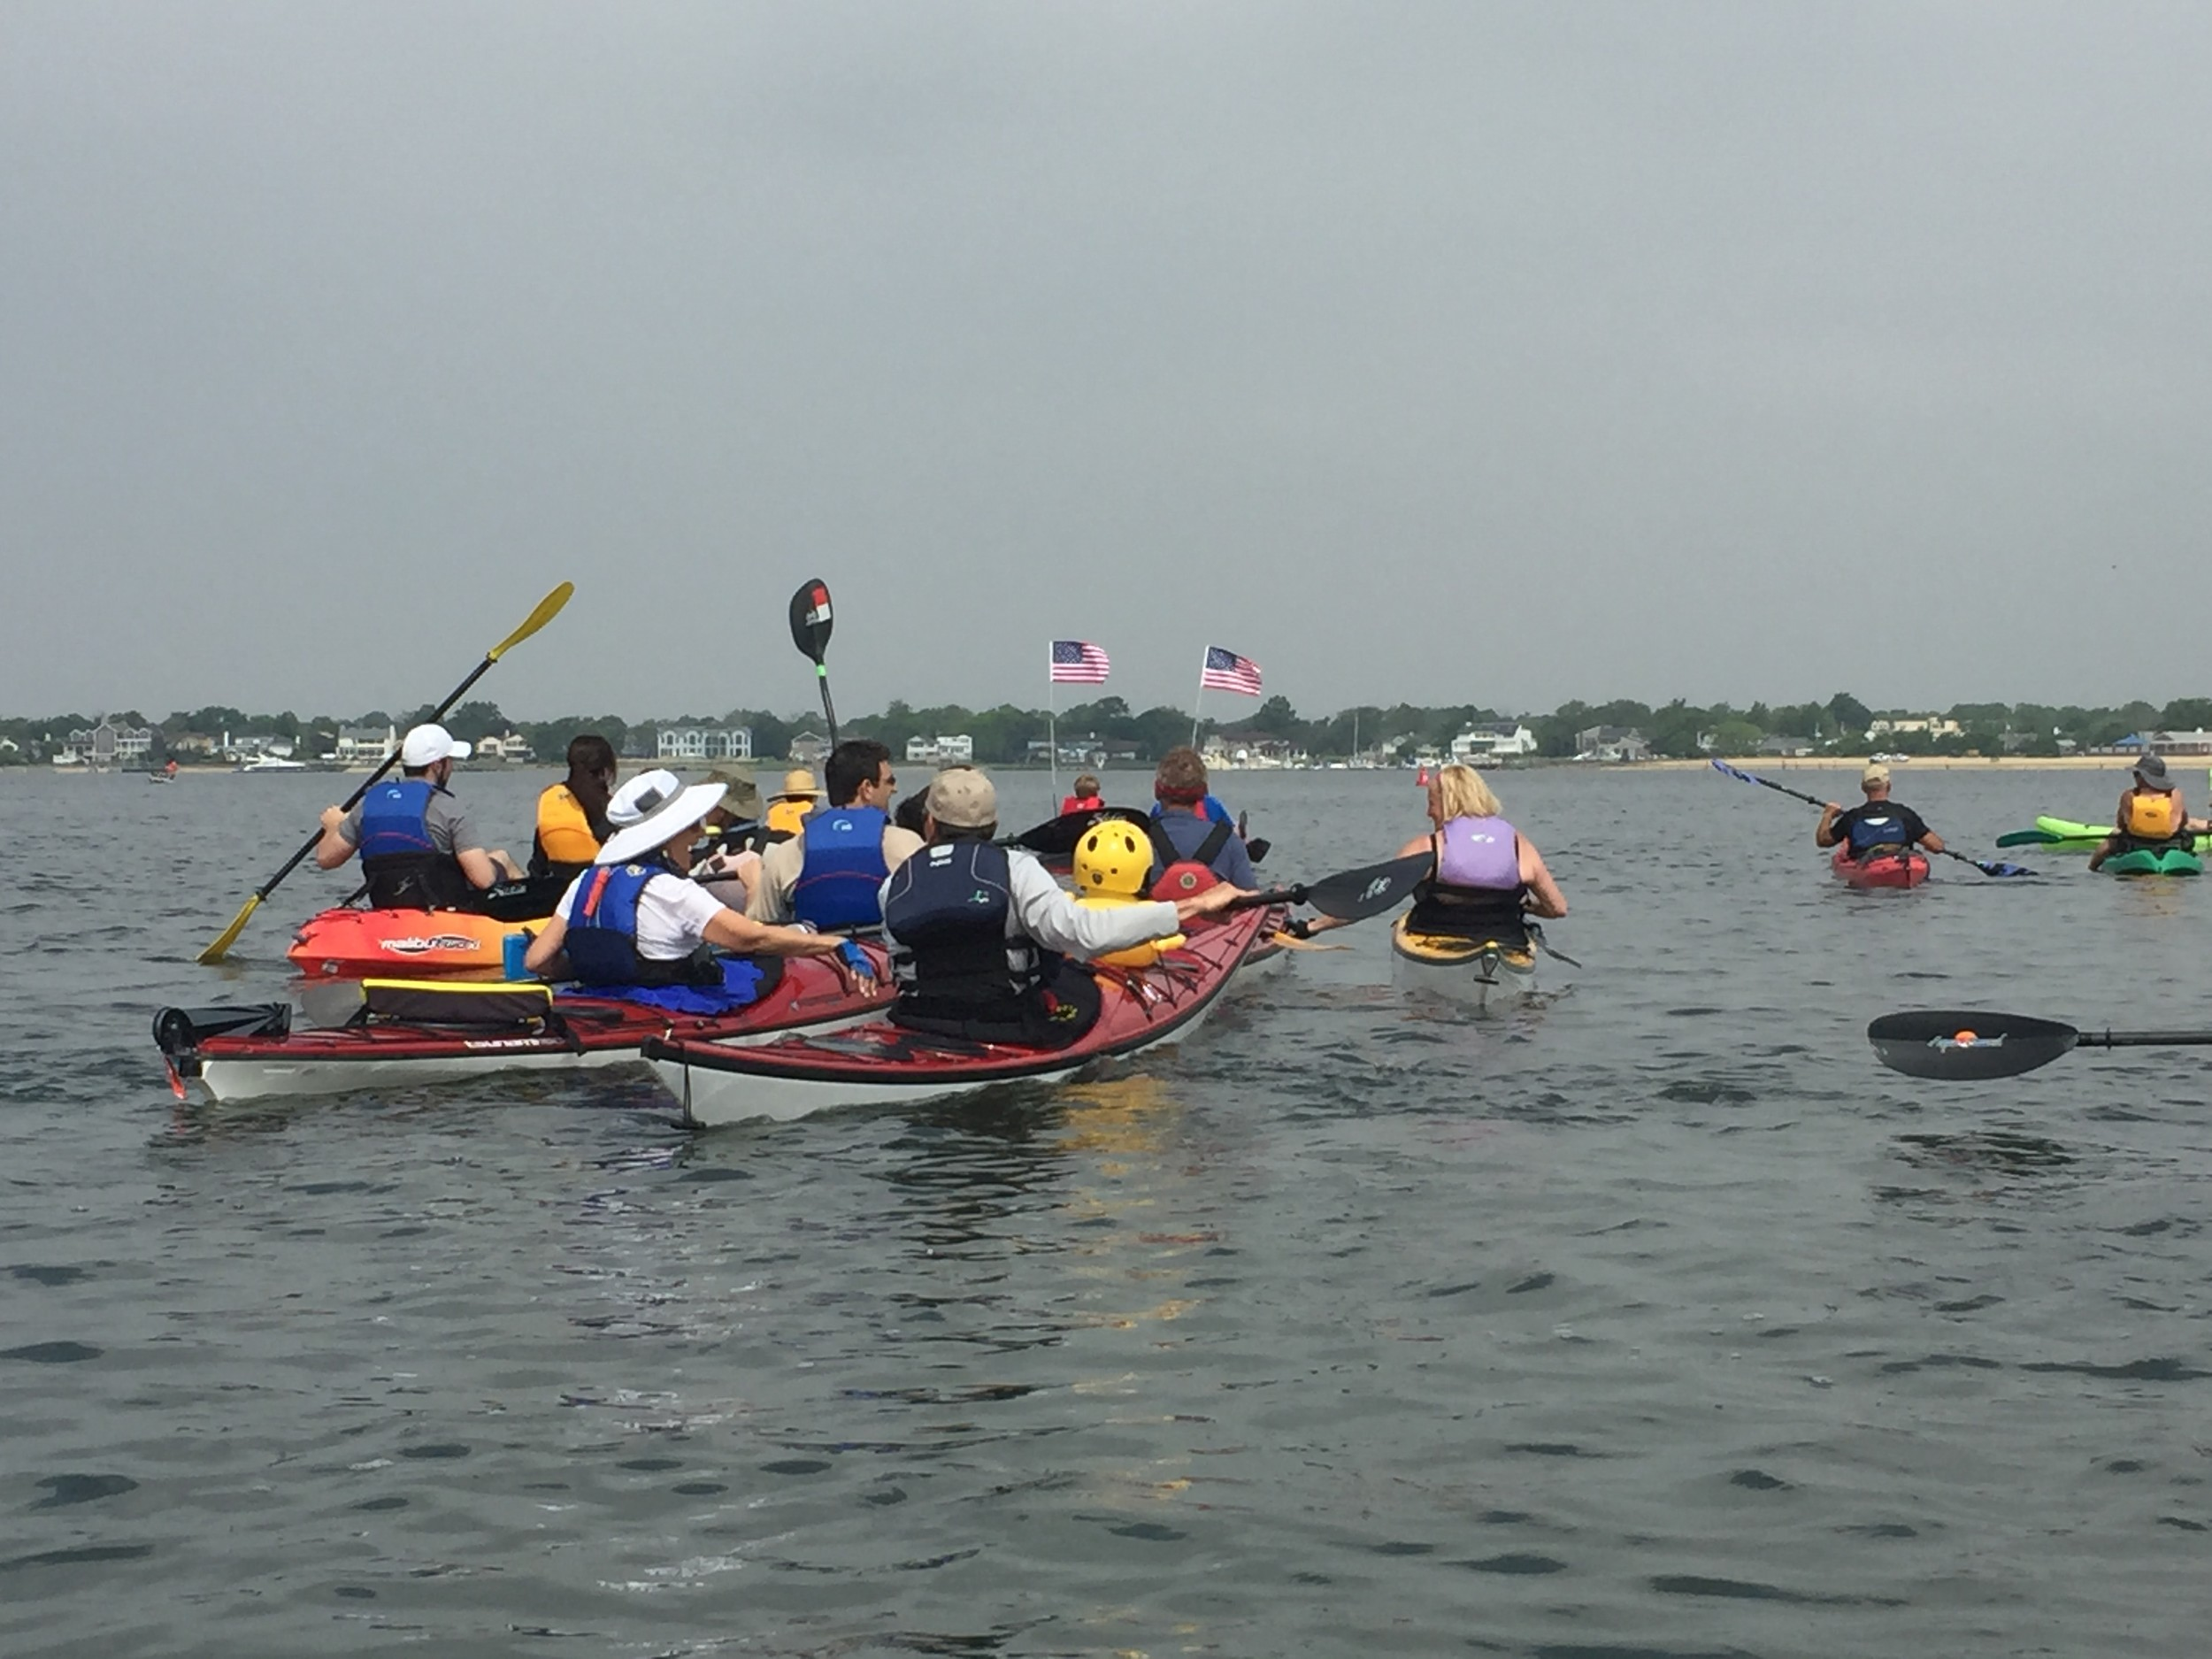 Groups of kayakers made their way across the bay to Hewlett Point Beach